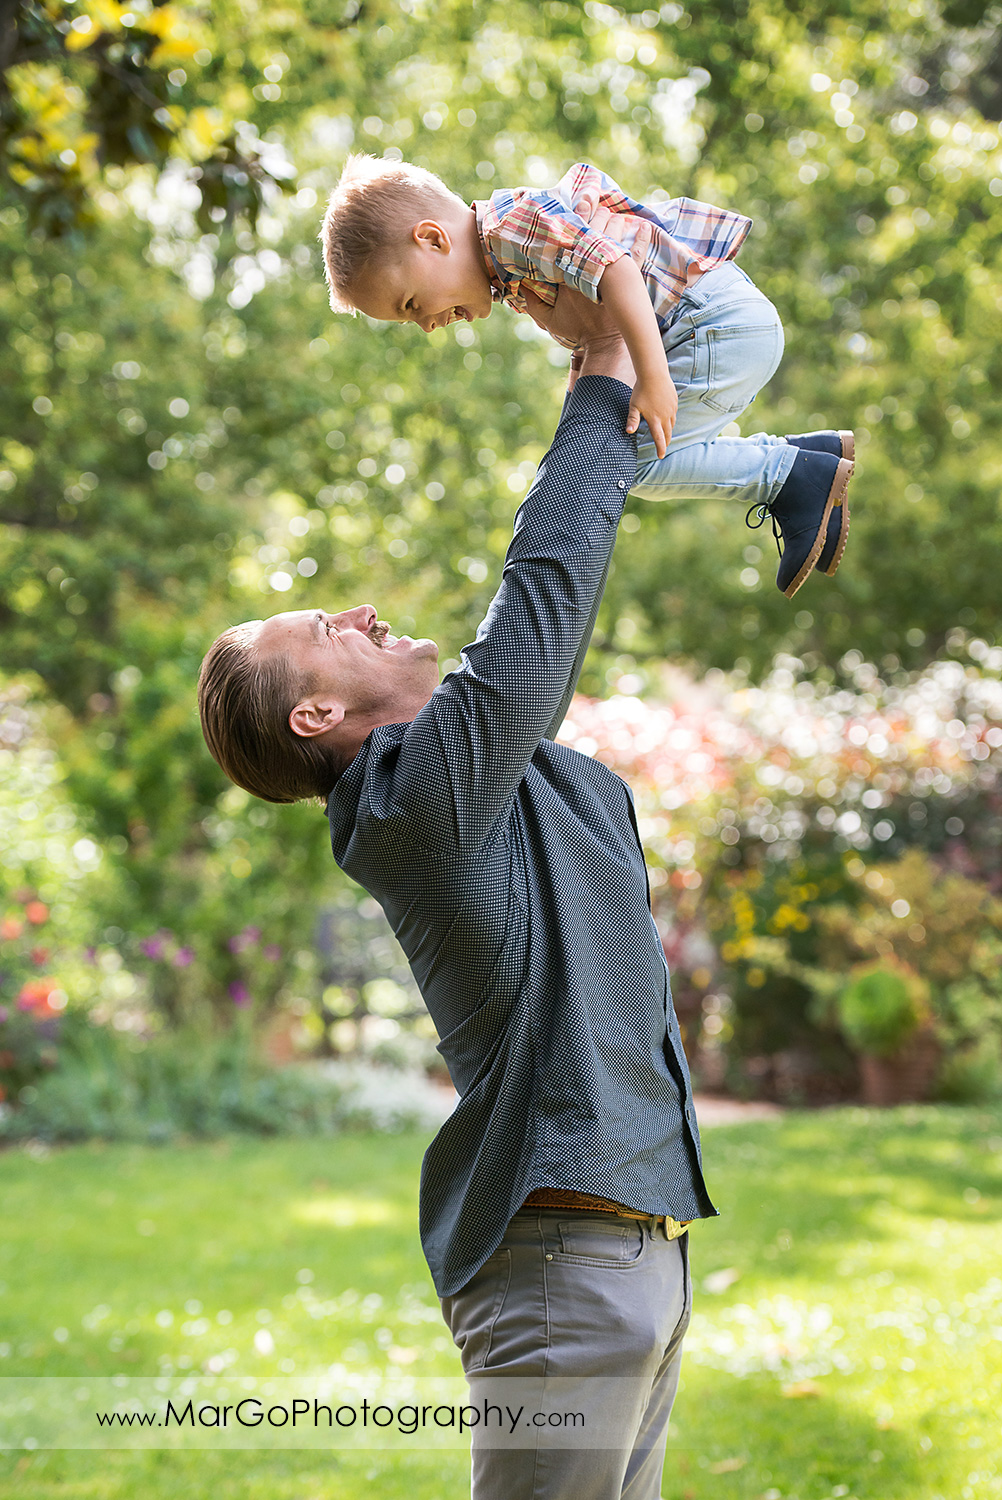 man in grey shirt lifting up little boy in Shinn Historical Park and Arboretum in Fremont